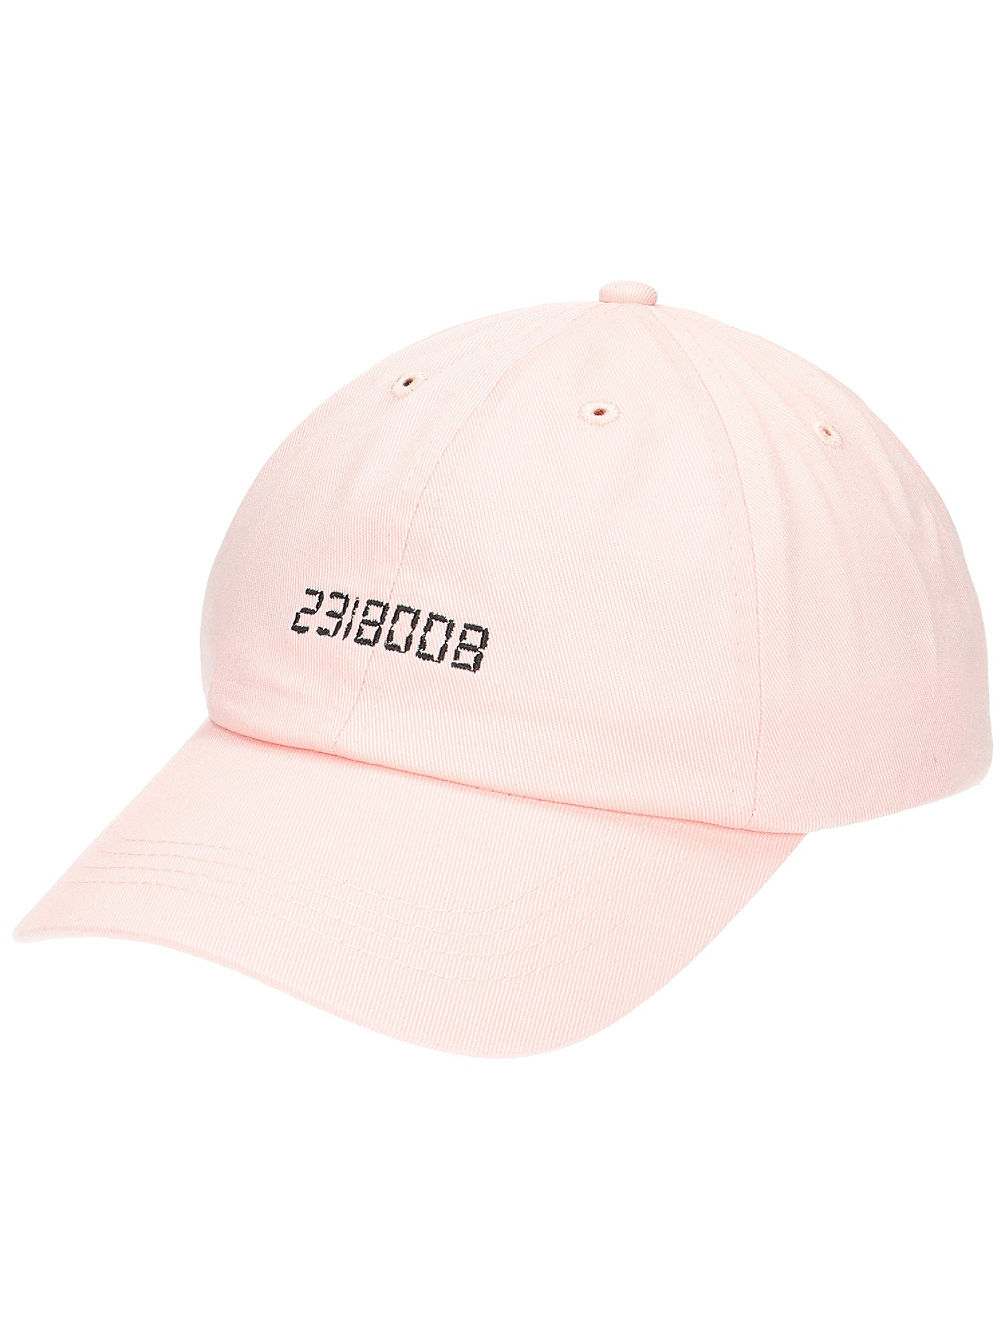 2318008 Dad Hat Cap